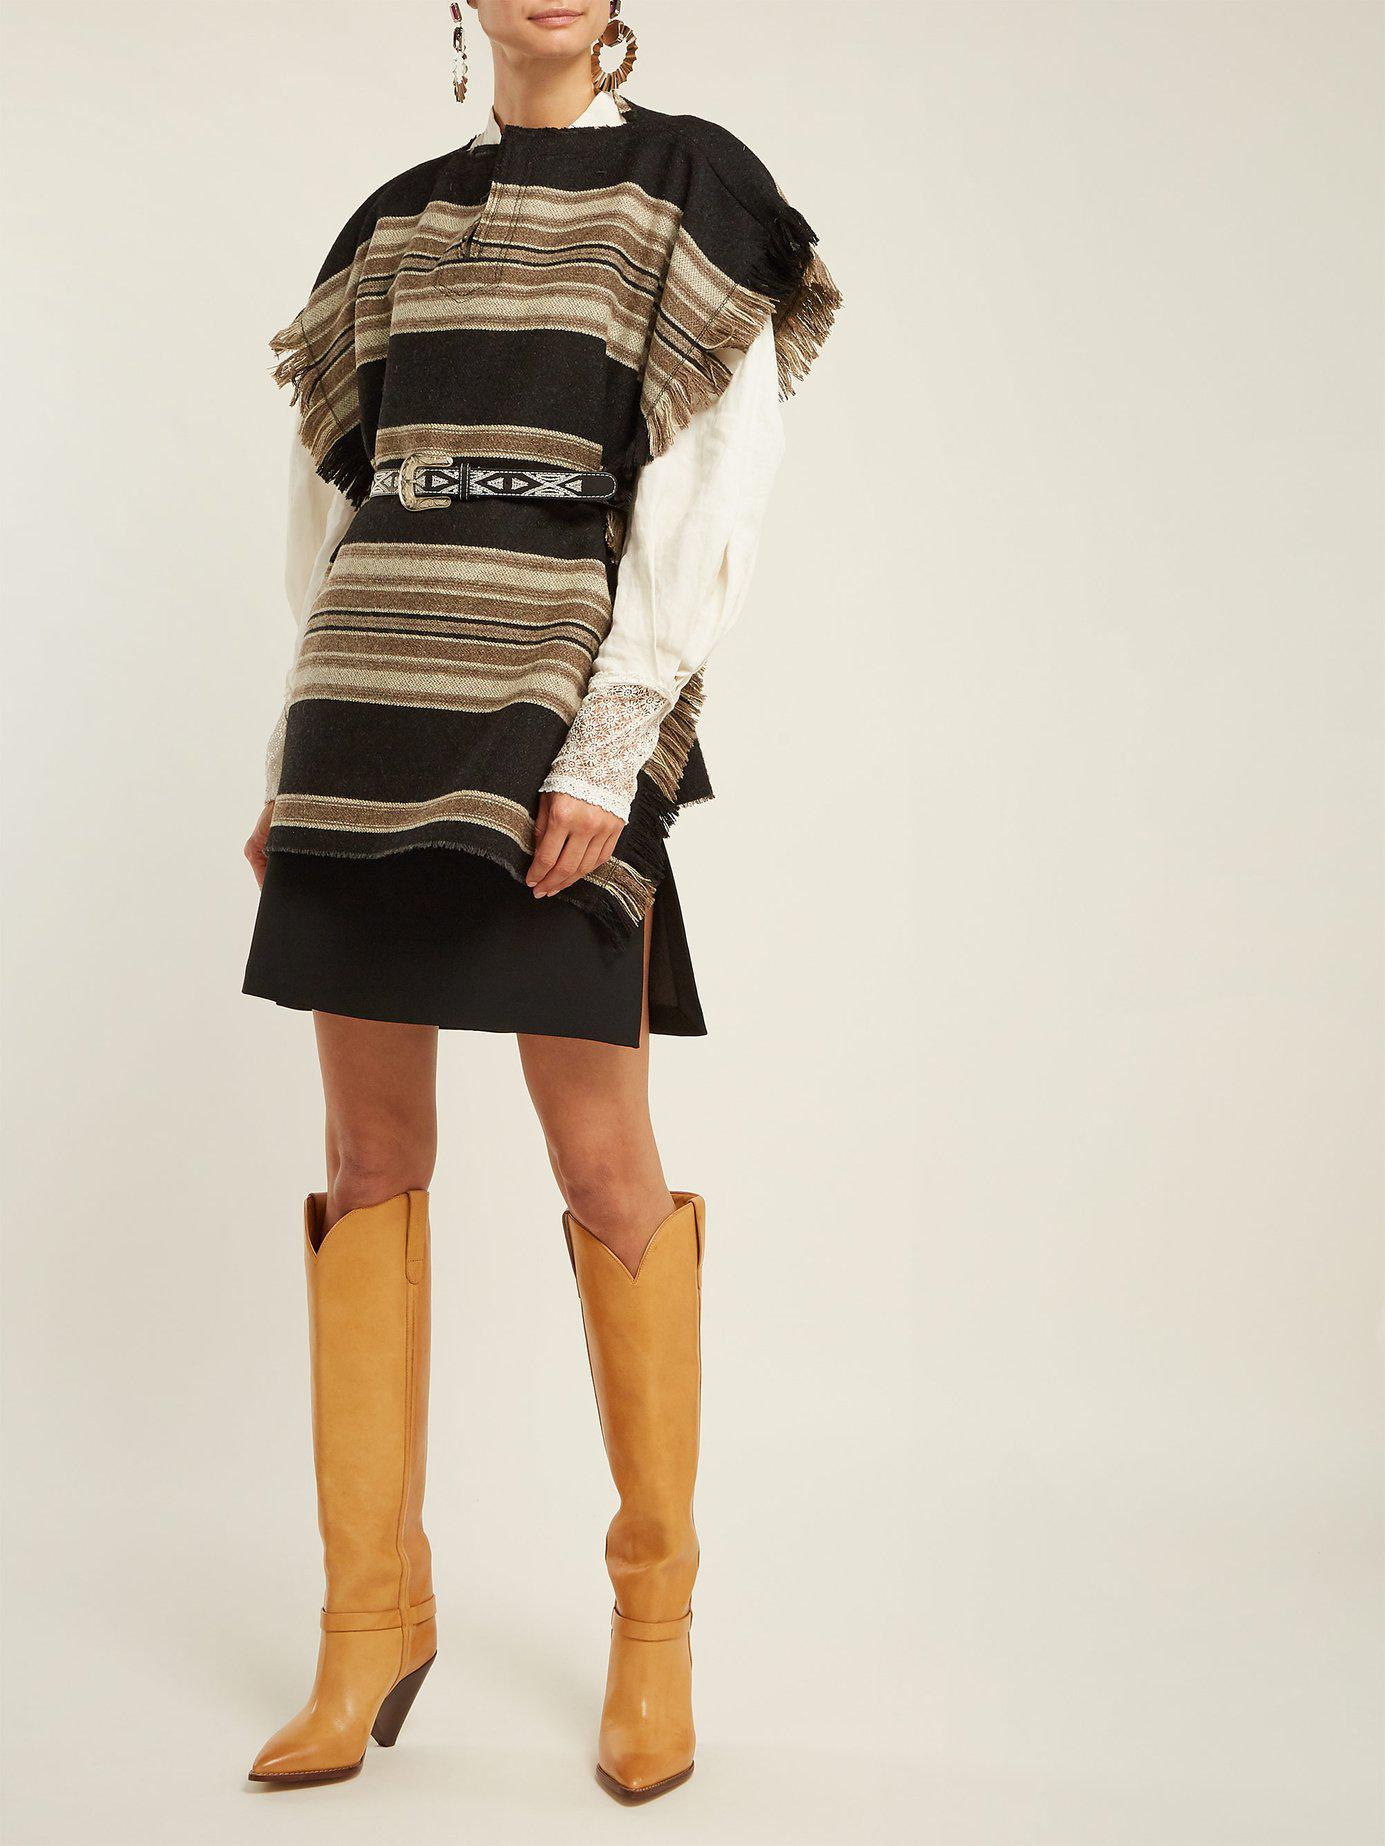 8fb34f6e52a Lyst - Isabel Marant Lafsten Thigh High Leather Boots in Brown